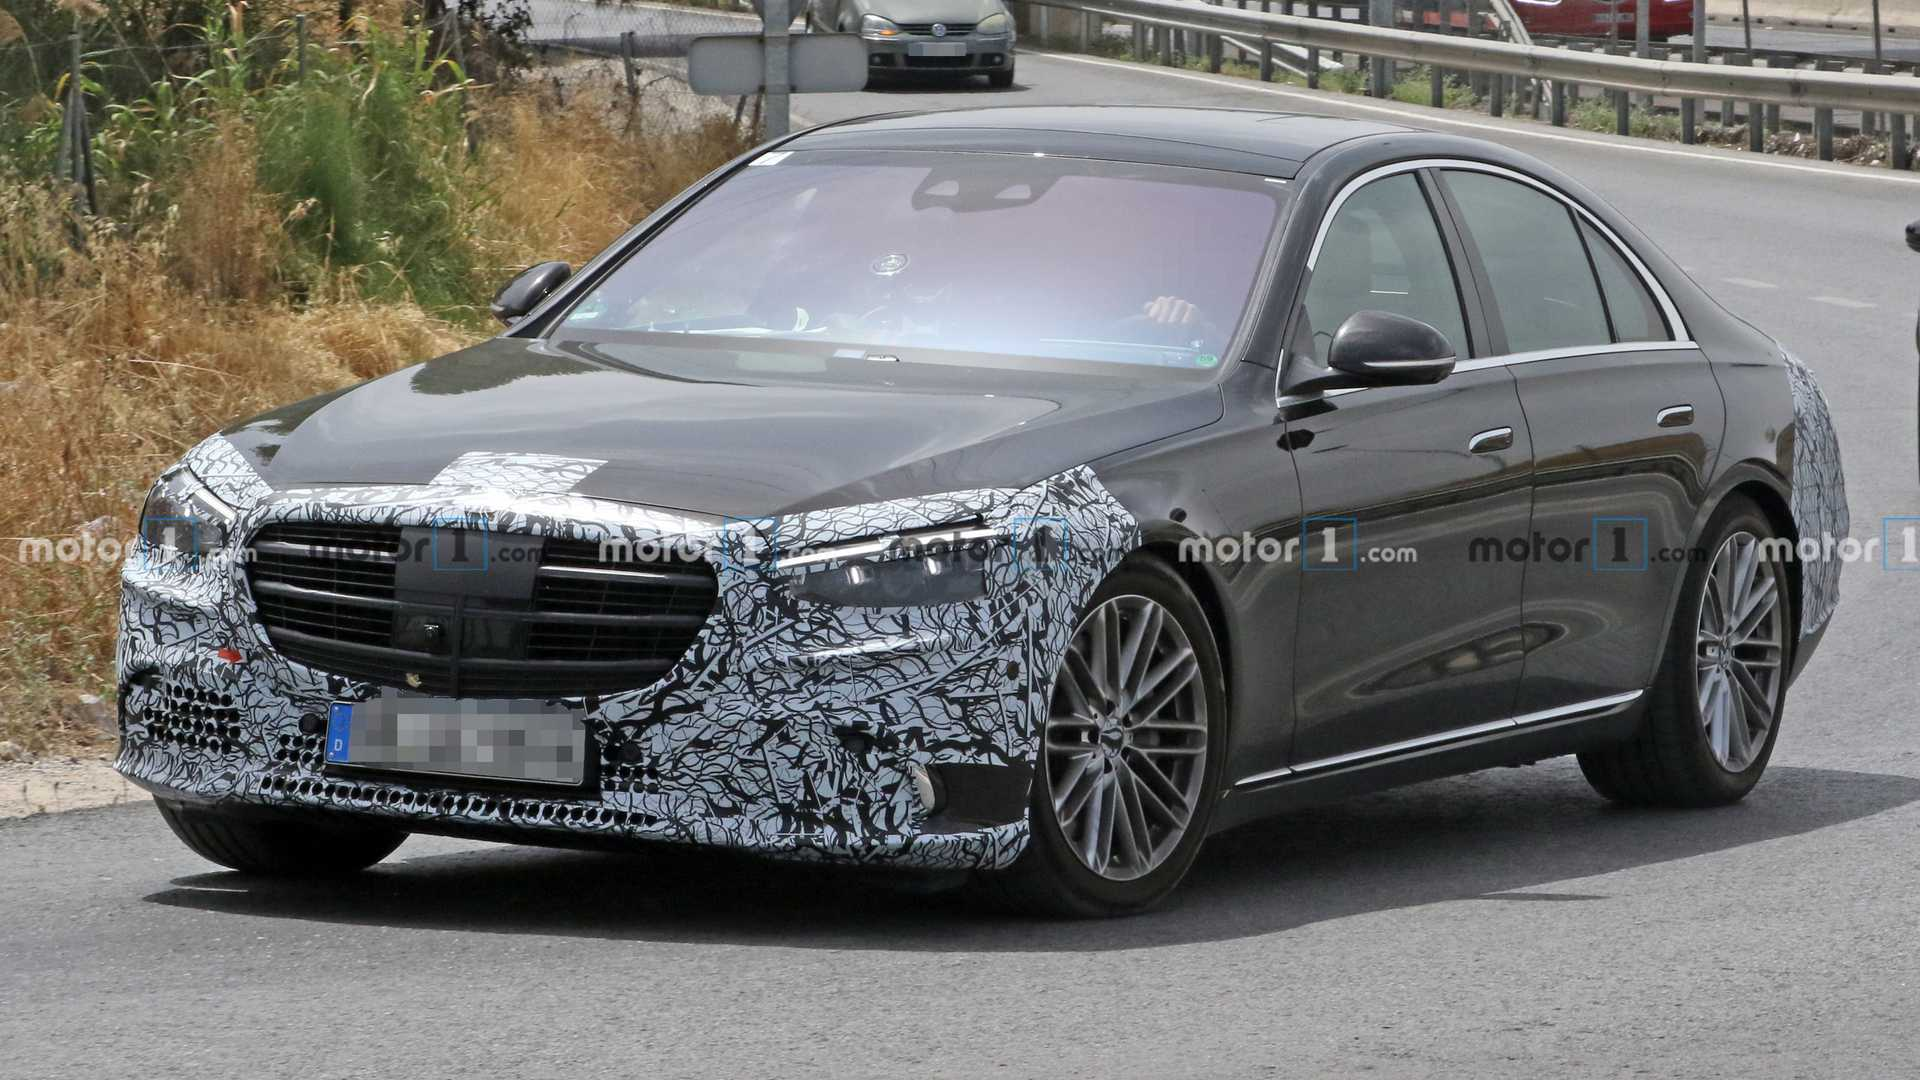 2021 mercedesbenz sclass strips out more camo